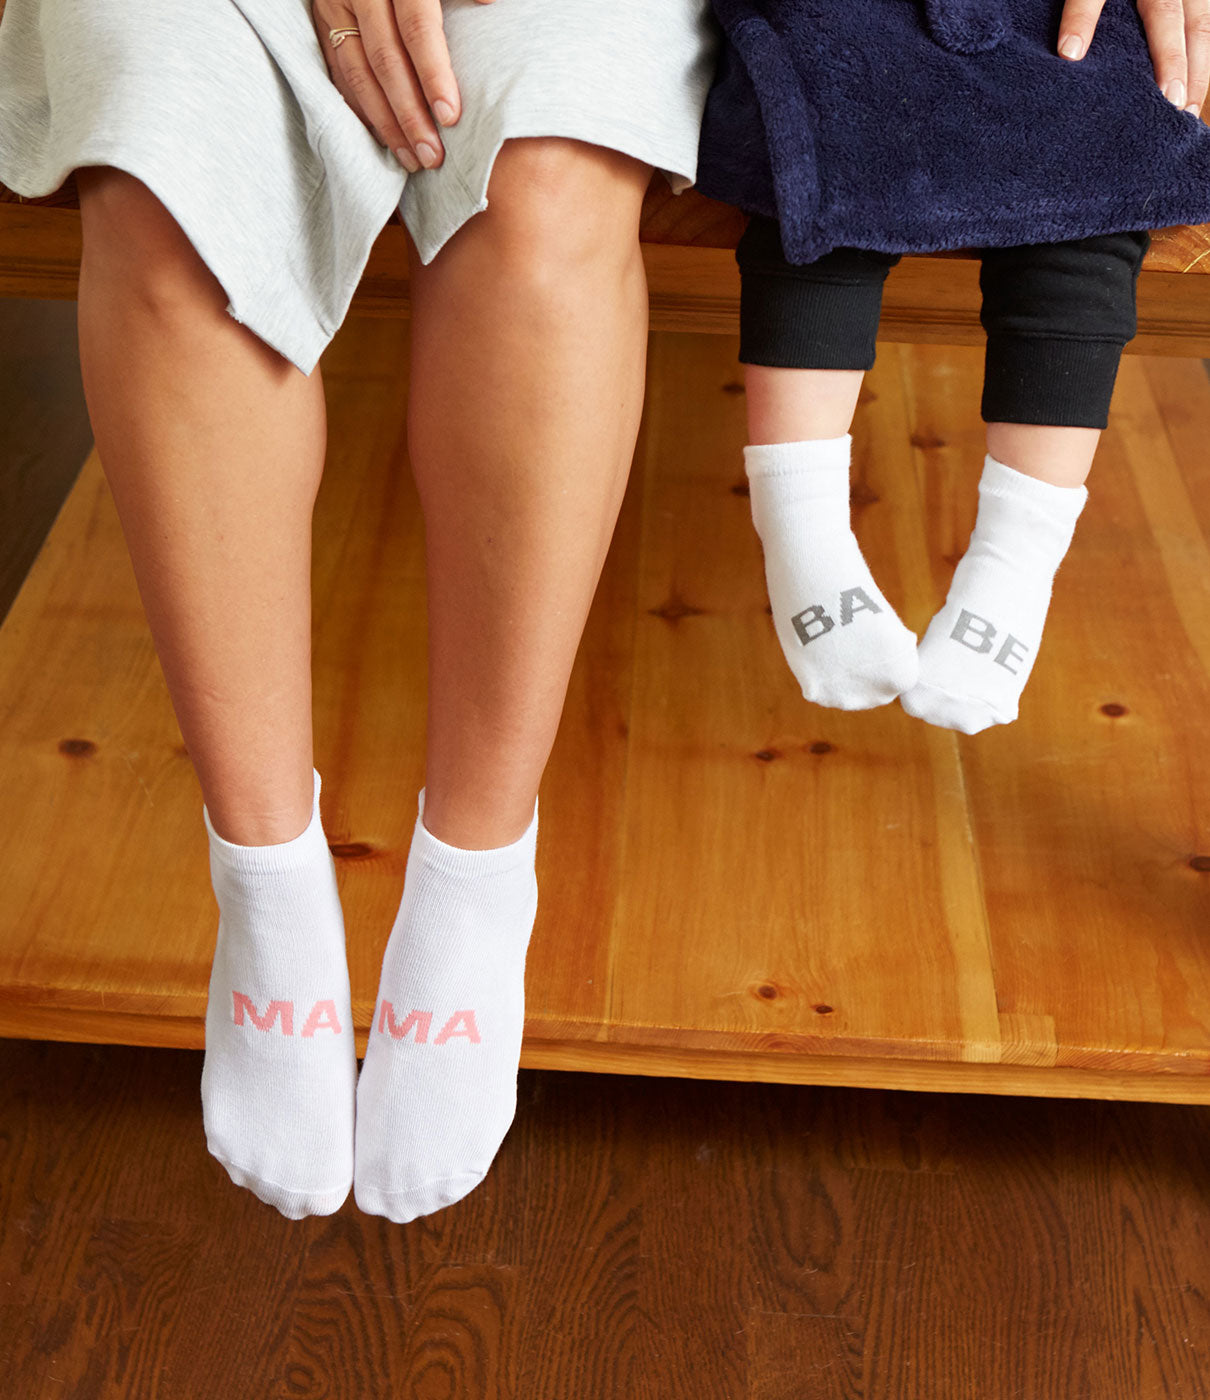 Make It A PairCheck out the Babe Socks for an adorable mommy-and-me look.